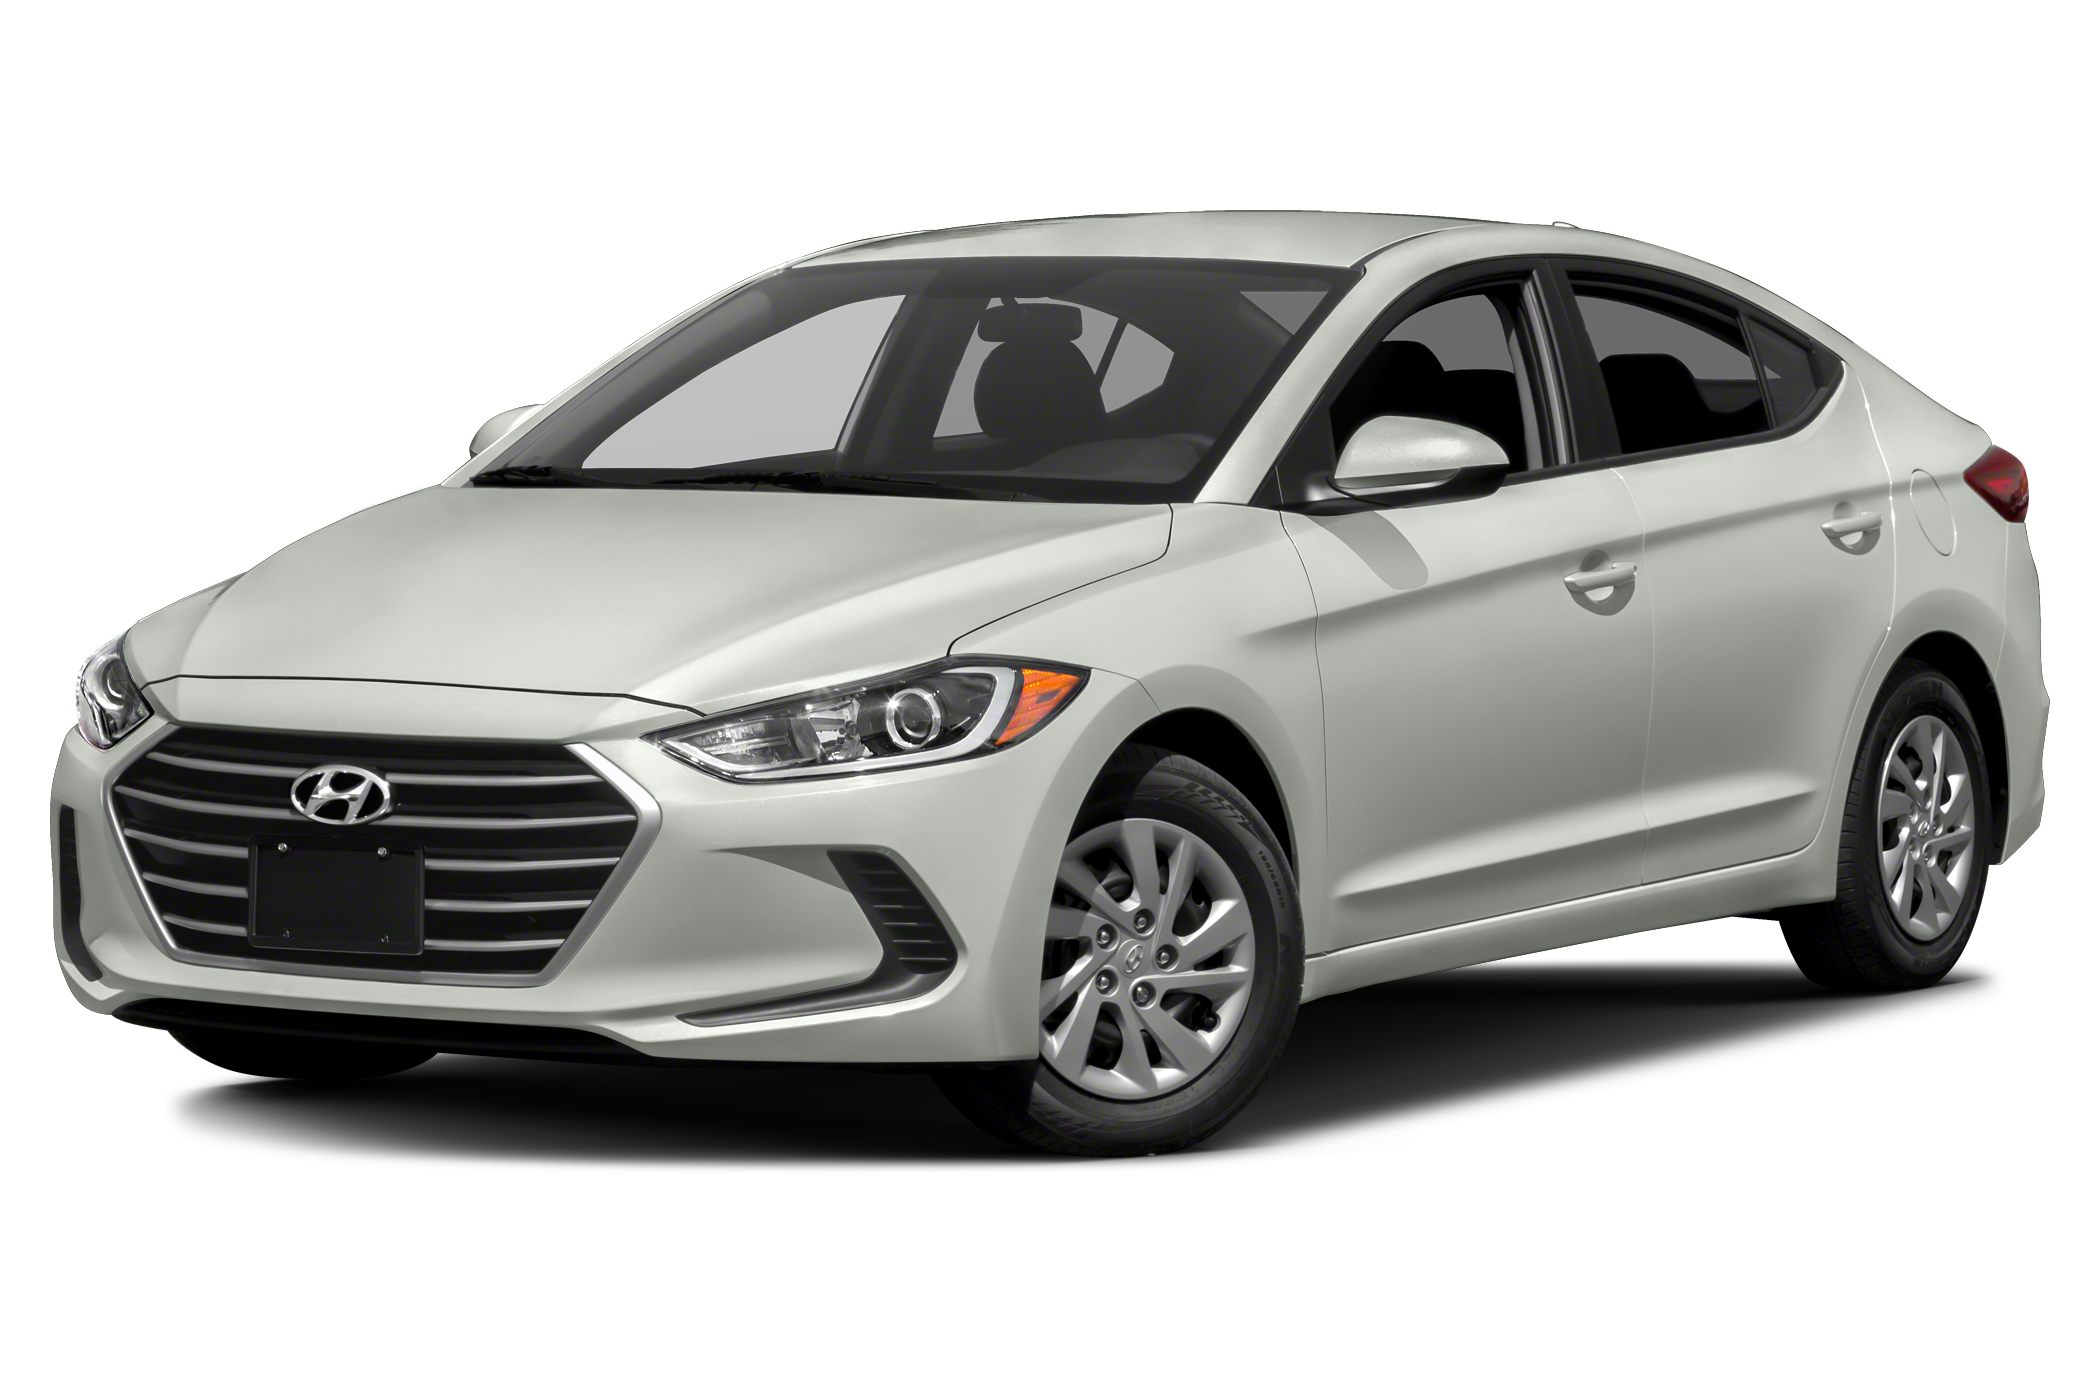 Hyundai Canada Incentives for the new 2018 Hyundai Elantra Sedan Superstructure and Coupe in Milton, Toronto, and the GTA